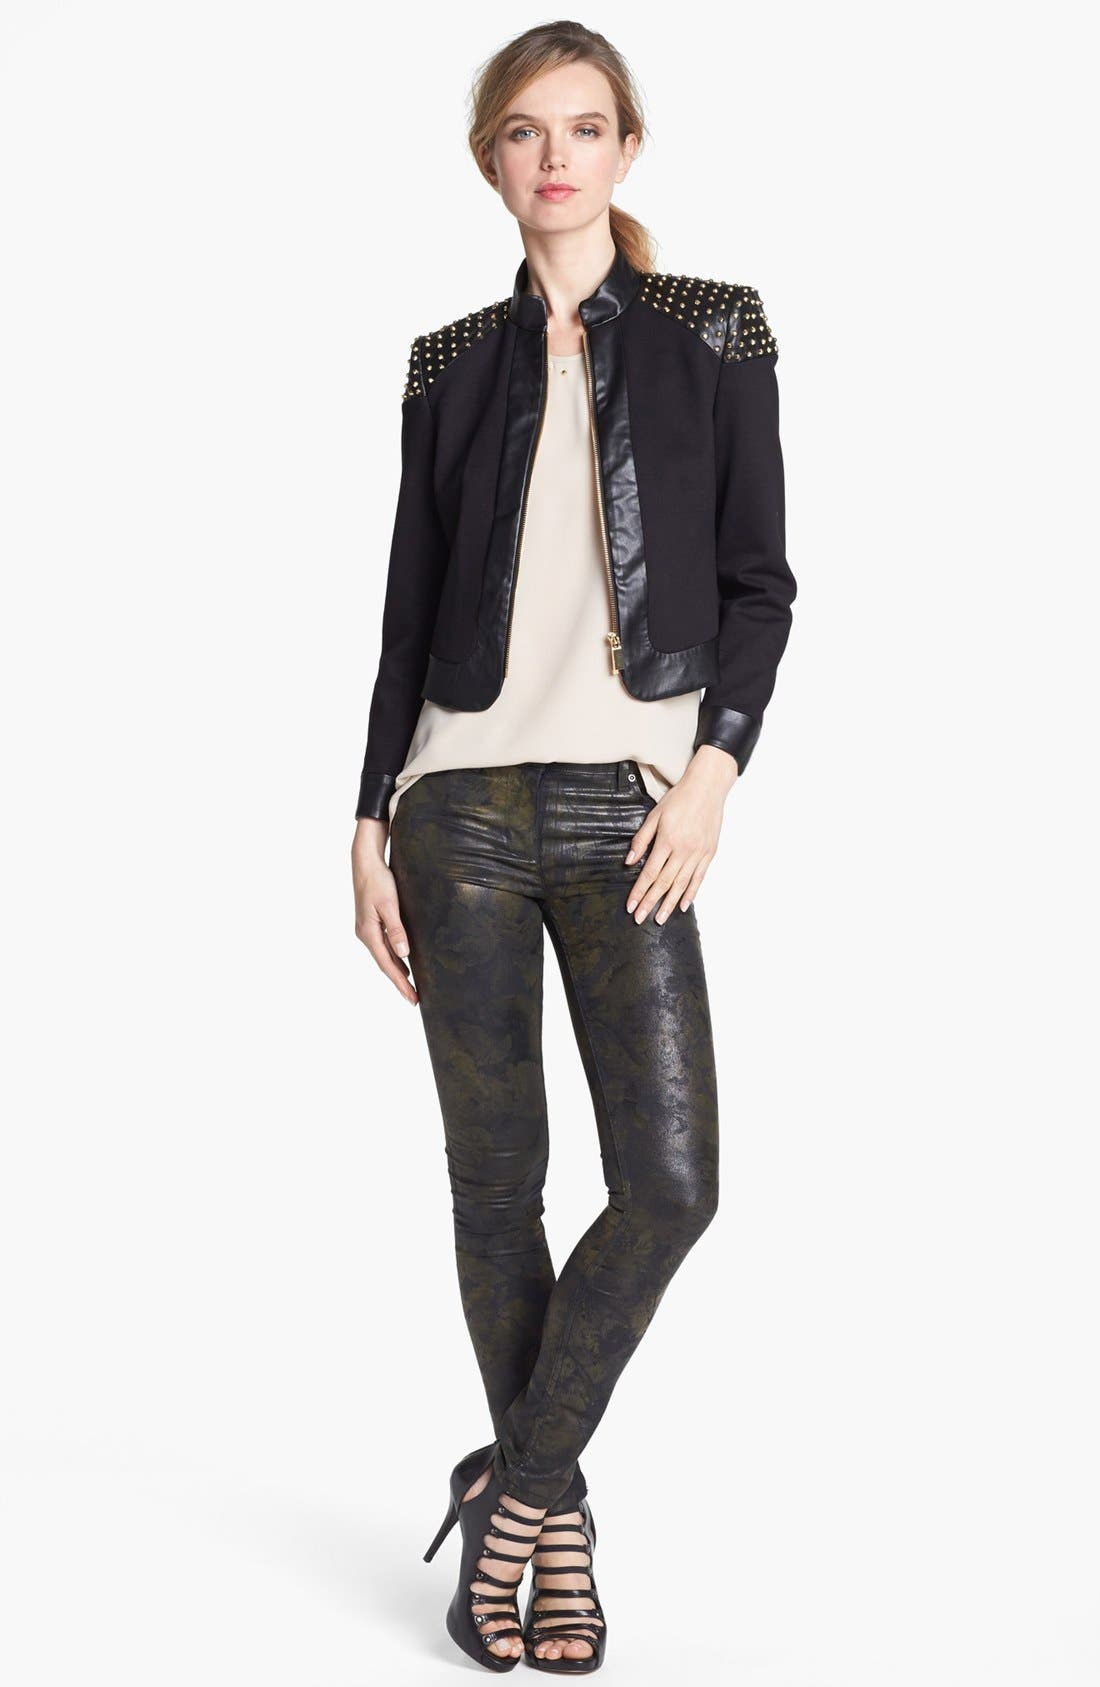 Alternate Image 1 Selected - Vince Camuto Studded Faux Leather Trim Jacket